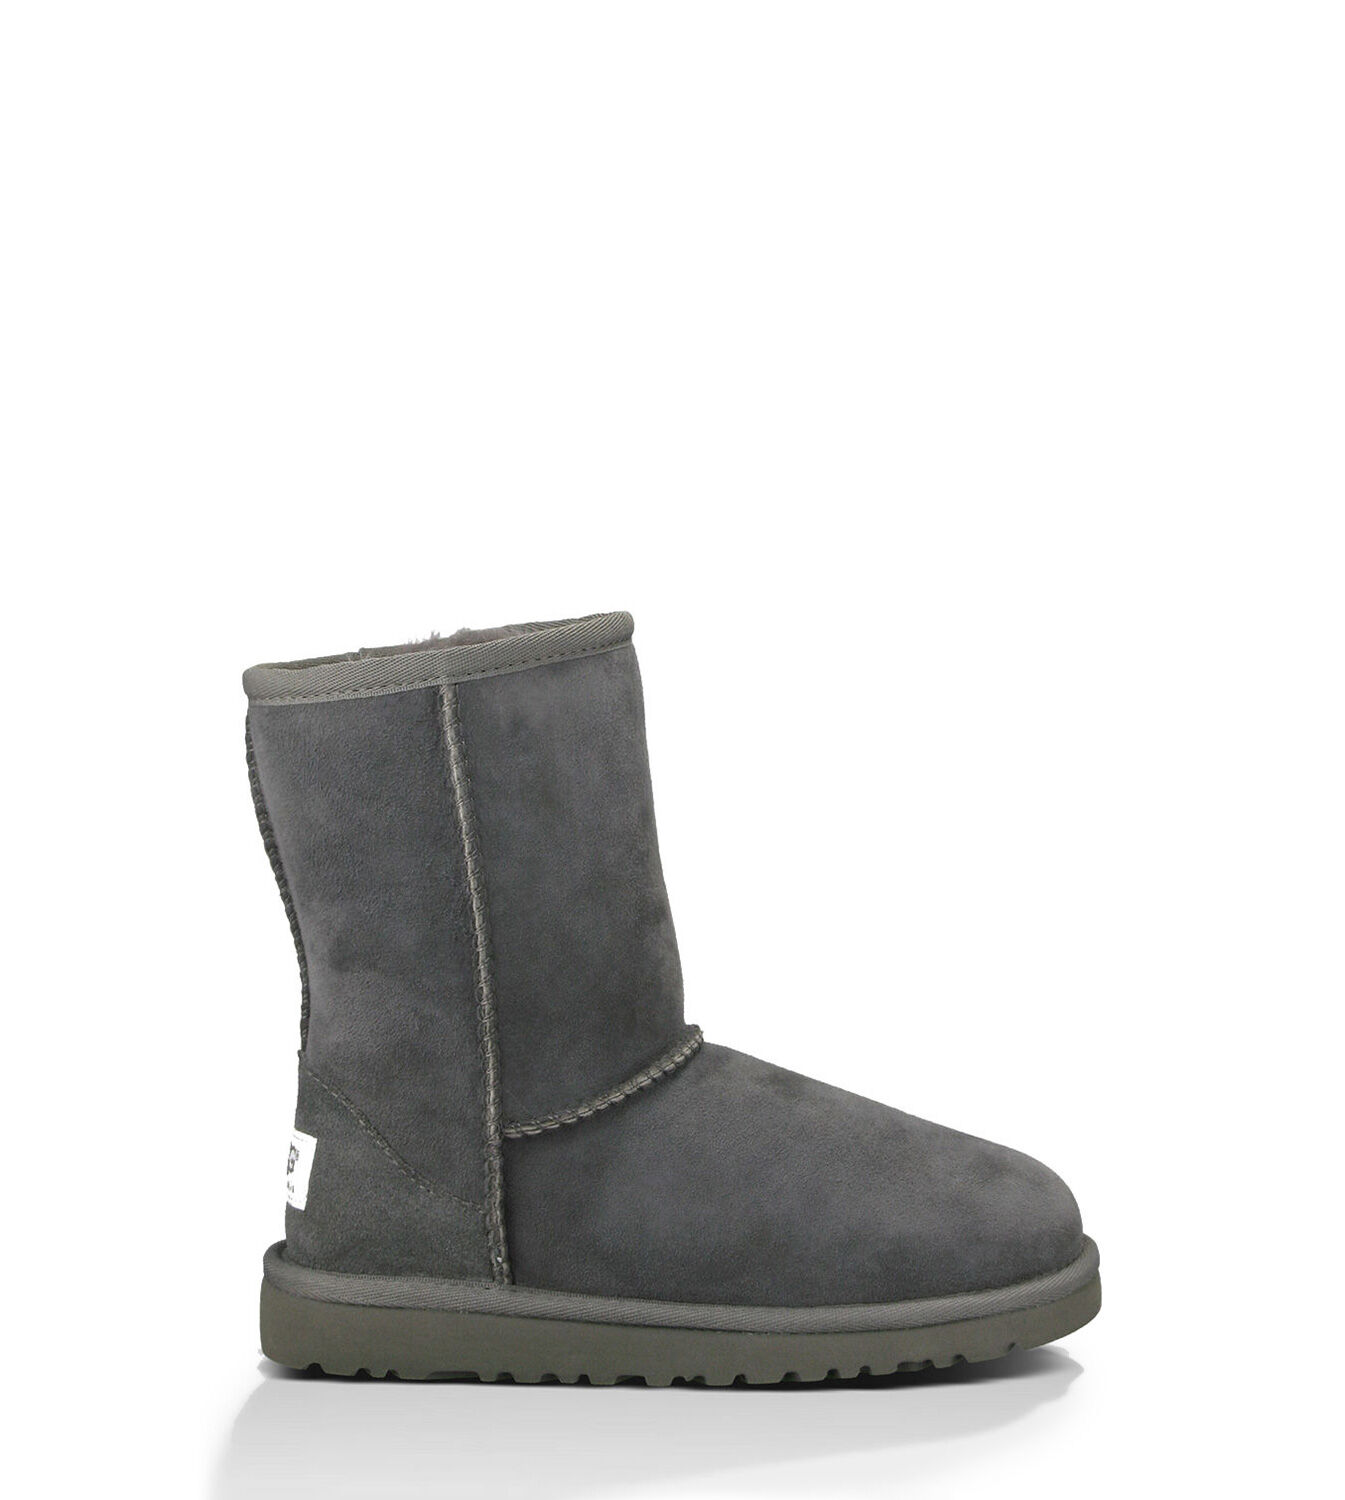 bottes ugg taille 22